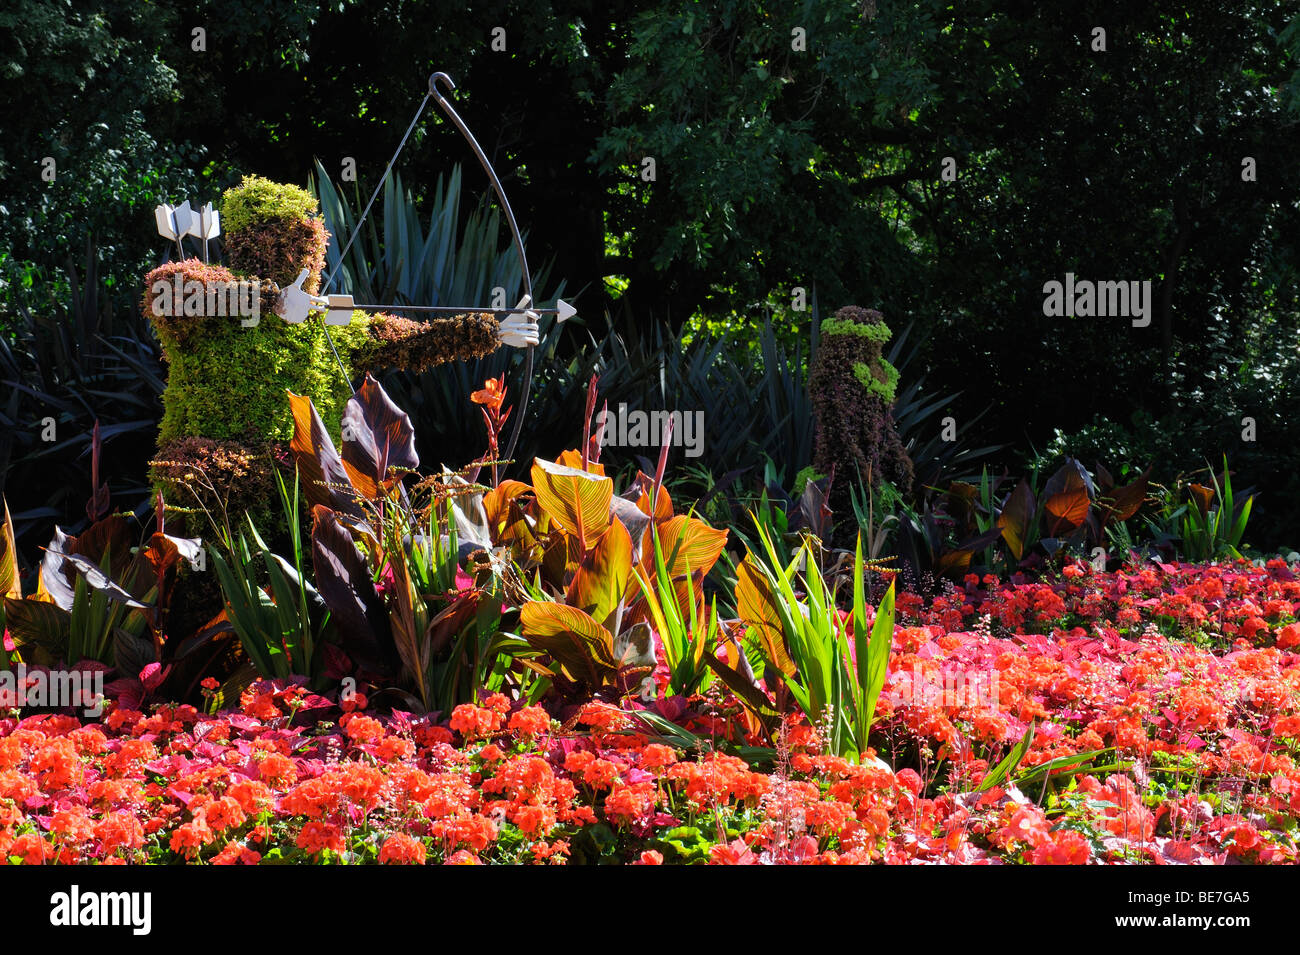 A Robin Hood flower display in the grounds of Nottingham Castle, Nottingham, England - Stock Image